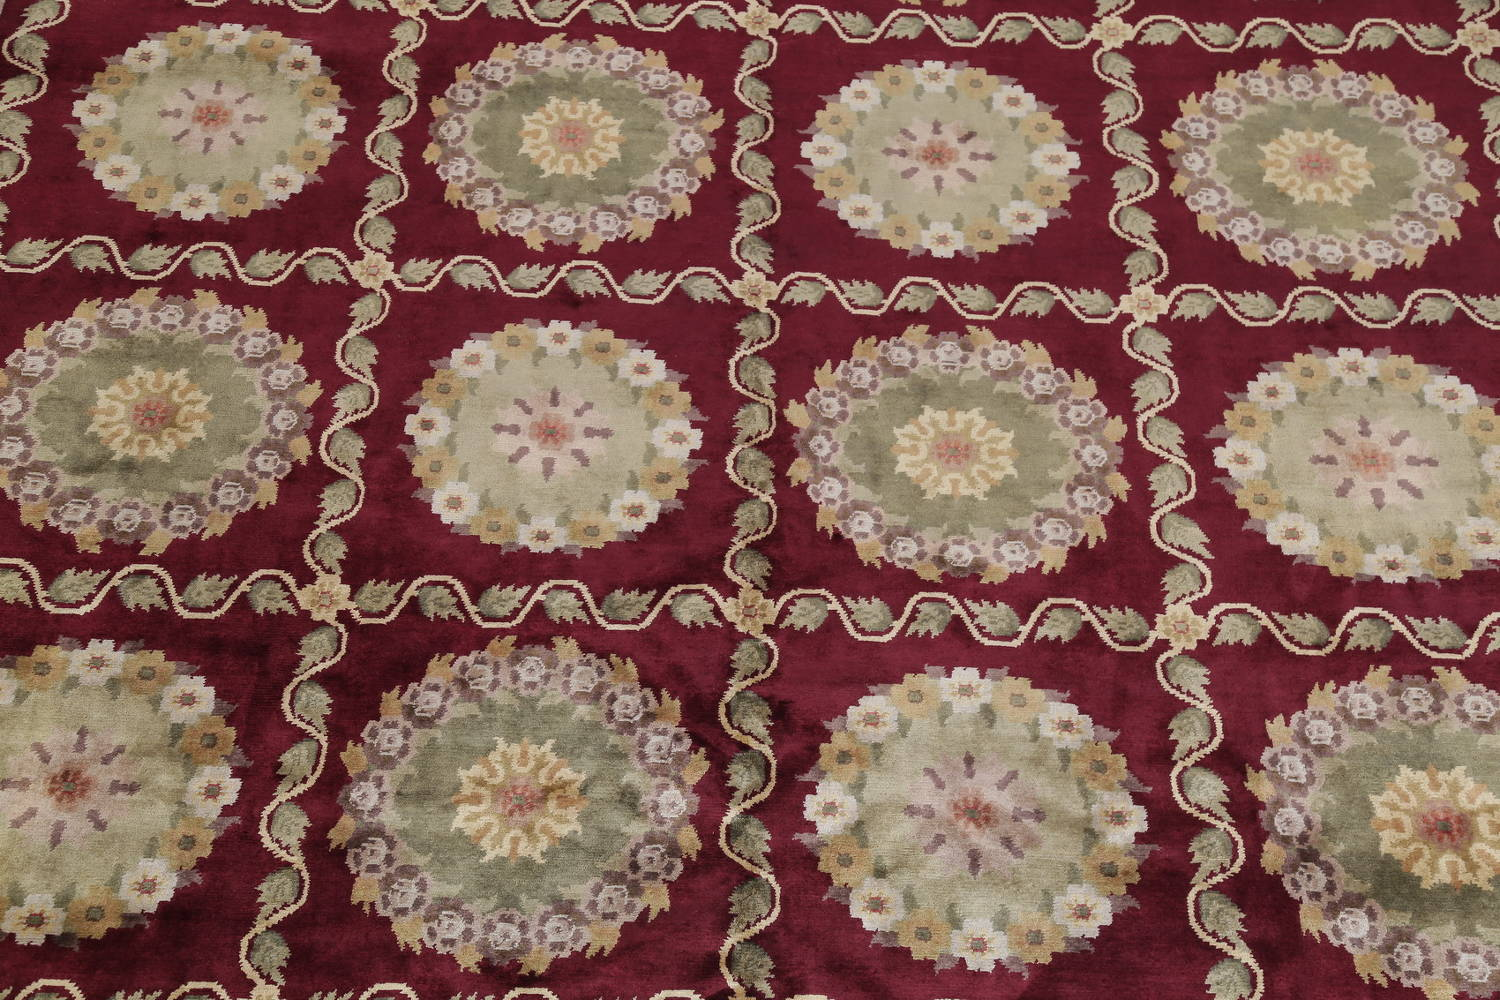 Geometric Red Aubusson Kathmando Oriental Hand-Knotted Area Rug 10x15 image 4